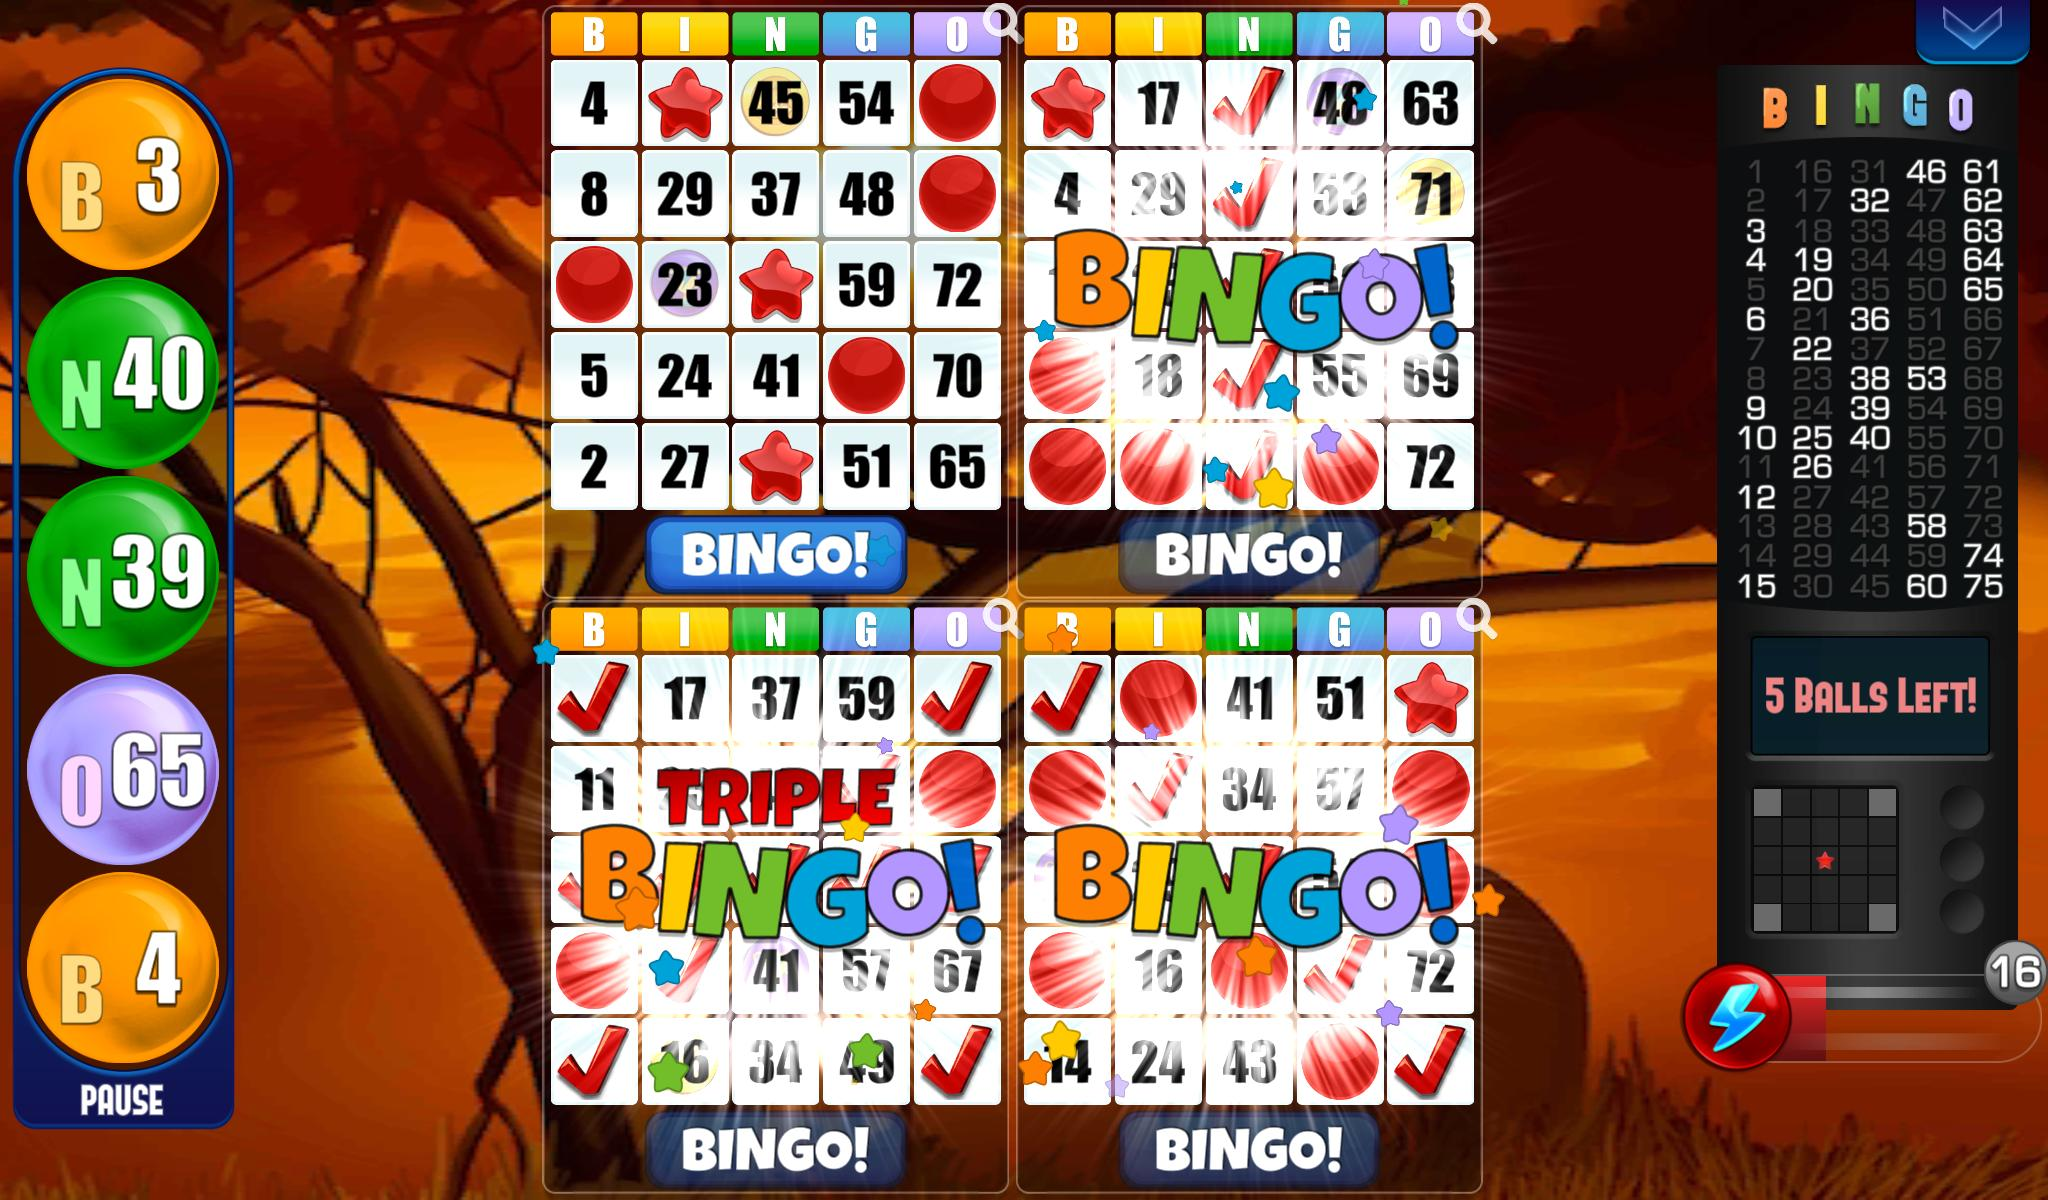 Bingo - Free Bingo Games 2.05.003 Screenshot 3